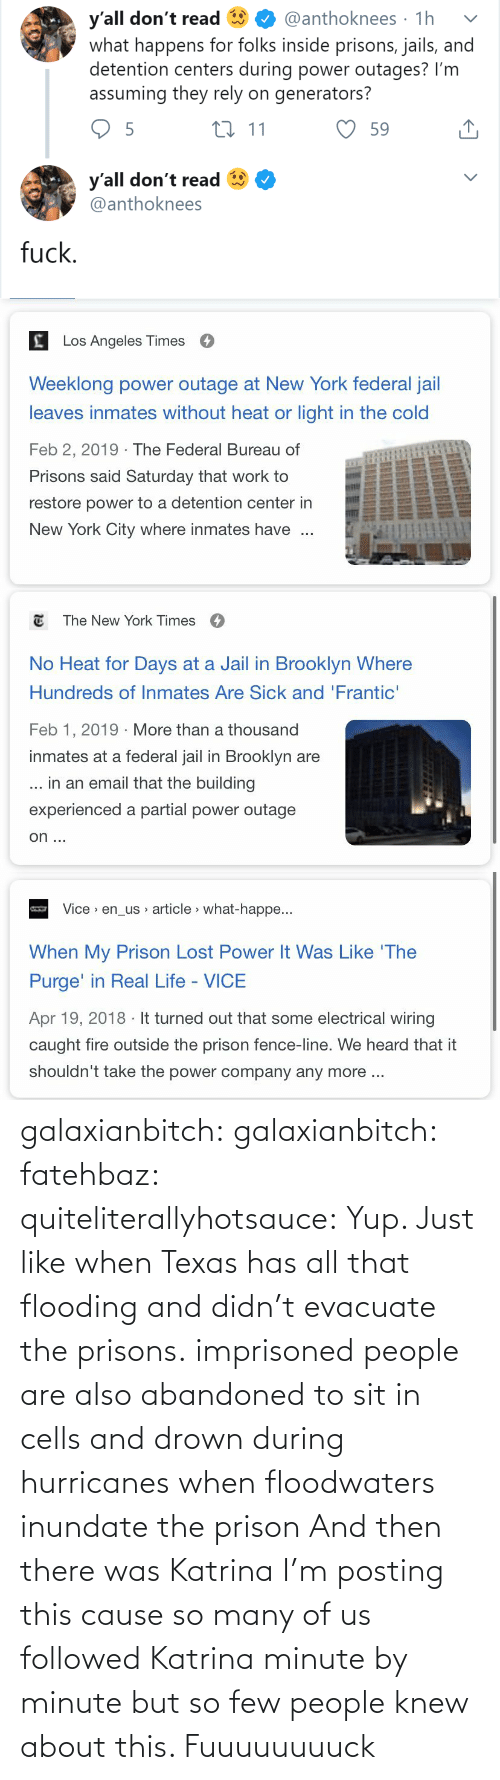 followed: y'all don't read  what happens for folks inside prisons, jails, and  detention centers during power outages? I'm  assuming they rely on generators?  @anthoknees · 1h  27 11  59  y'all don't read  @anthoknees  fuck.   Los Angeles Times  Weeklong power outage at New York federal jail  leaves inmates without heat or light in the cold  Feb 2, 2019 · The Federal Bureau of  Prisons said Saturday that work to  restore power to a detention center in  New York City where inmates have   E The New York Times  O  No Heat for Days at a Jail in Brooklyn Where  Hundreds of Inmates Are Sick and 'Frantic'  Feb 1, 2019 · More than a thousand  inmates at a federal jail in Brooklyn are  ... in an email that the building  experienced a partial power outage  on ...   Vice > en_us article > what-happe...  When My Prison Lost Power It Was Like 'The  Purge' in Real Life - VICE  Apr 19, 2018 · It turned out that some electrical wiring  caught fire outside the prison fence-line. We heard that it  shouldn't take the power company any more .. galaxianbitch: galaxianbitch:   fatehbaz:  quiteliterallyhotsauce:   Yup. Just like when Texas has all that flooding and didn't evacuate the prisons.   imprisoned people are also abandoned to sit in cells and drown during hurricanes when floodwaters inundate the prison   And then there was Katrina        I'm posting this cause so many of us followed Katrina minute by minute but so few people knew about this.    Fuuuuuuuuck